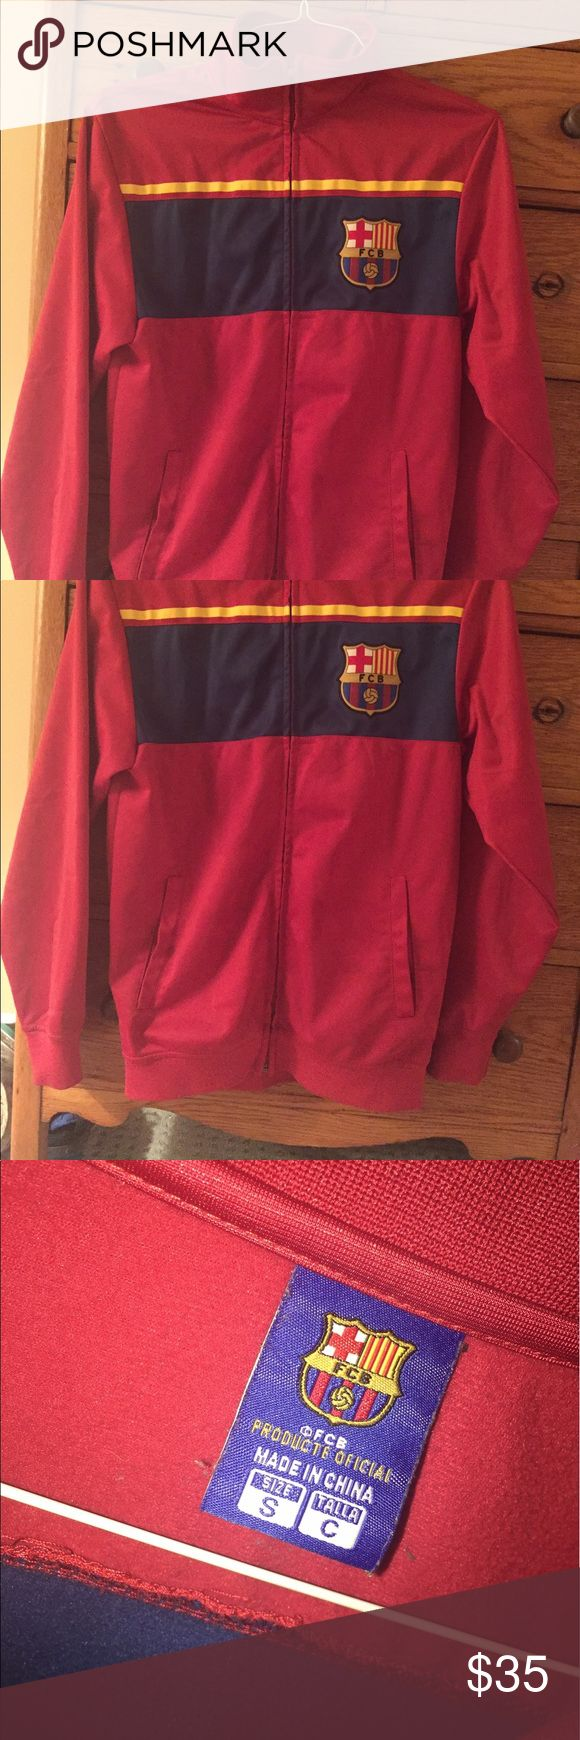 FC Barcelona Full Zip Jacket - rare! I loved this but sadly it doesn't fit anymore! Size small and runs true to size. No stains or rips. Worn occasionally but hasn't been worn in years Custo Barcelona Jackets & Coats Performance Jackets